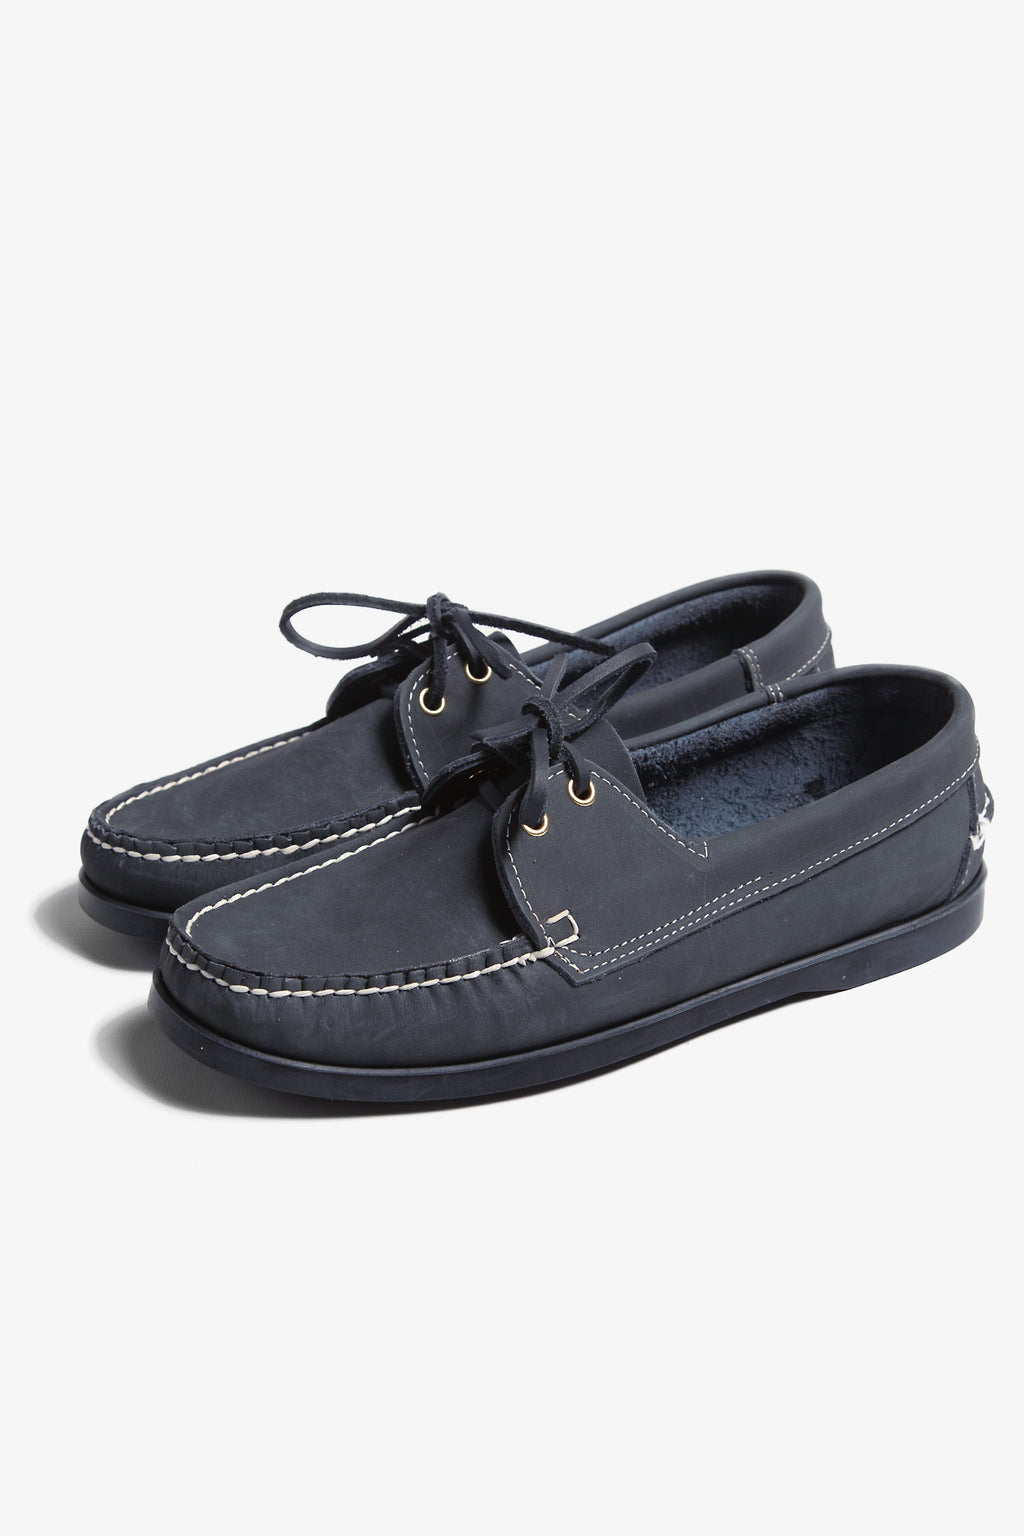 Goodcamp - Deck Loafer Shoes - Navy Blue